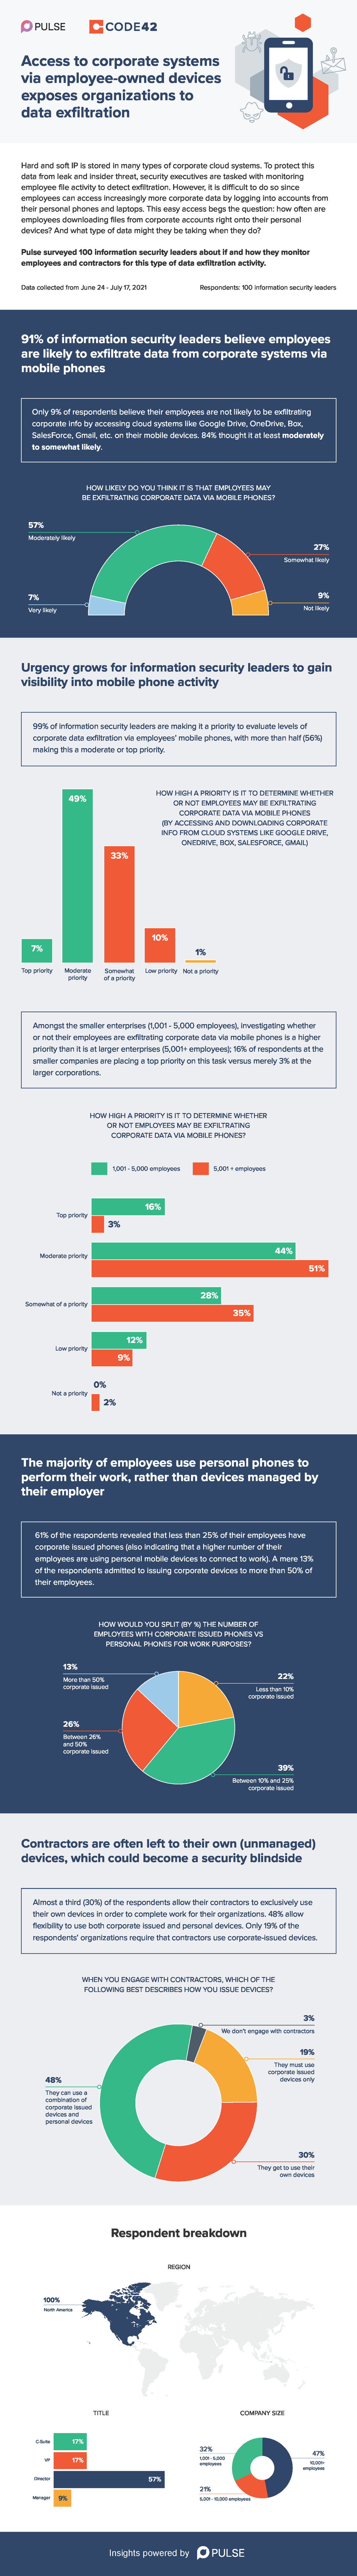 Infographic showing data on how access to corporate systems via employee-owned devices exposes organizations to data exfiltration.